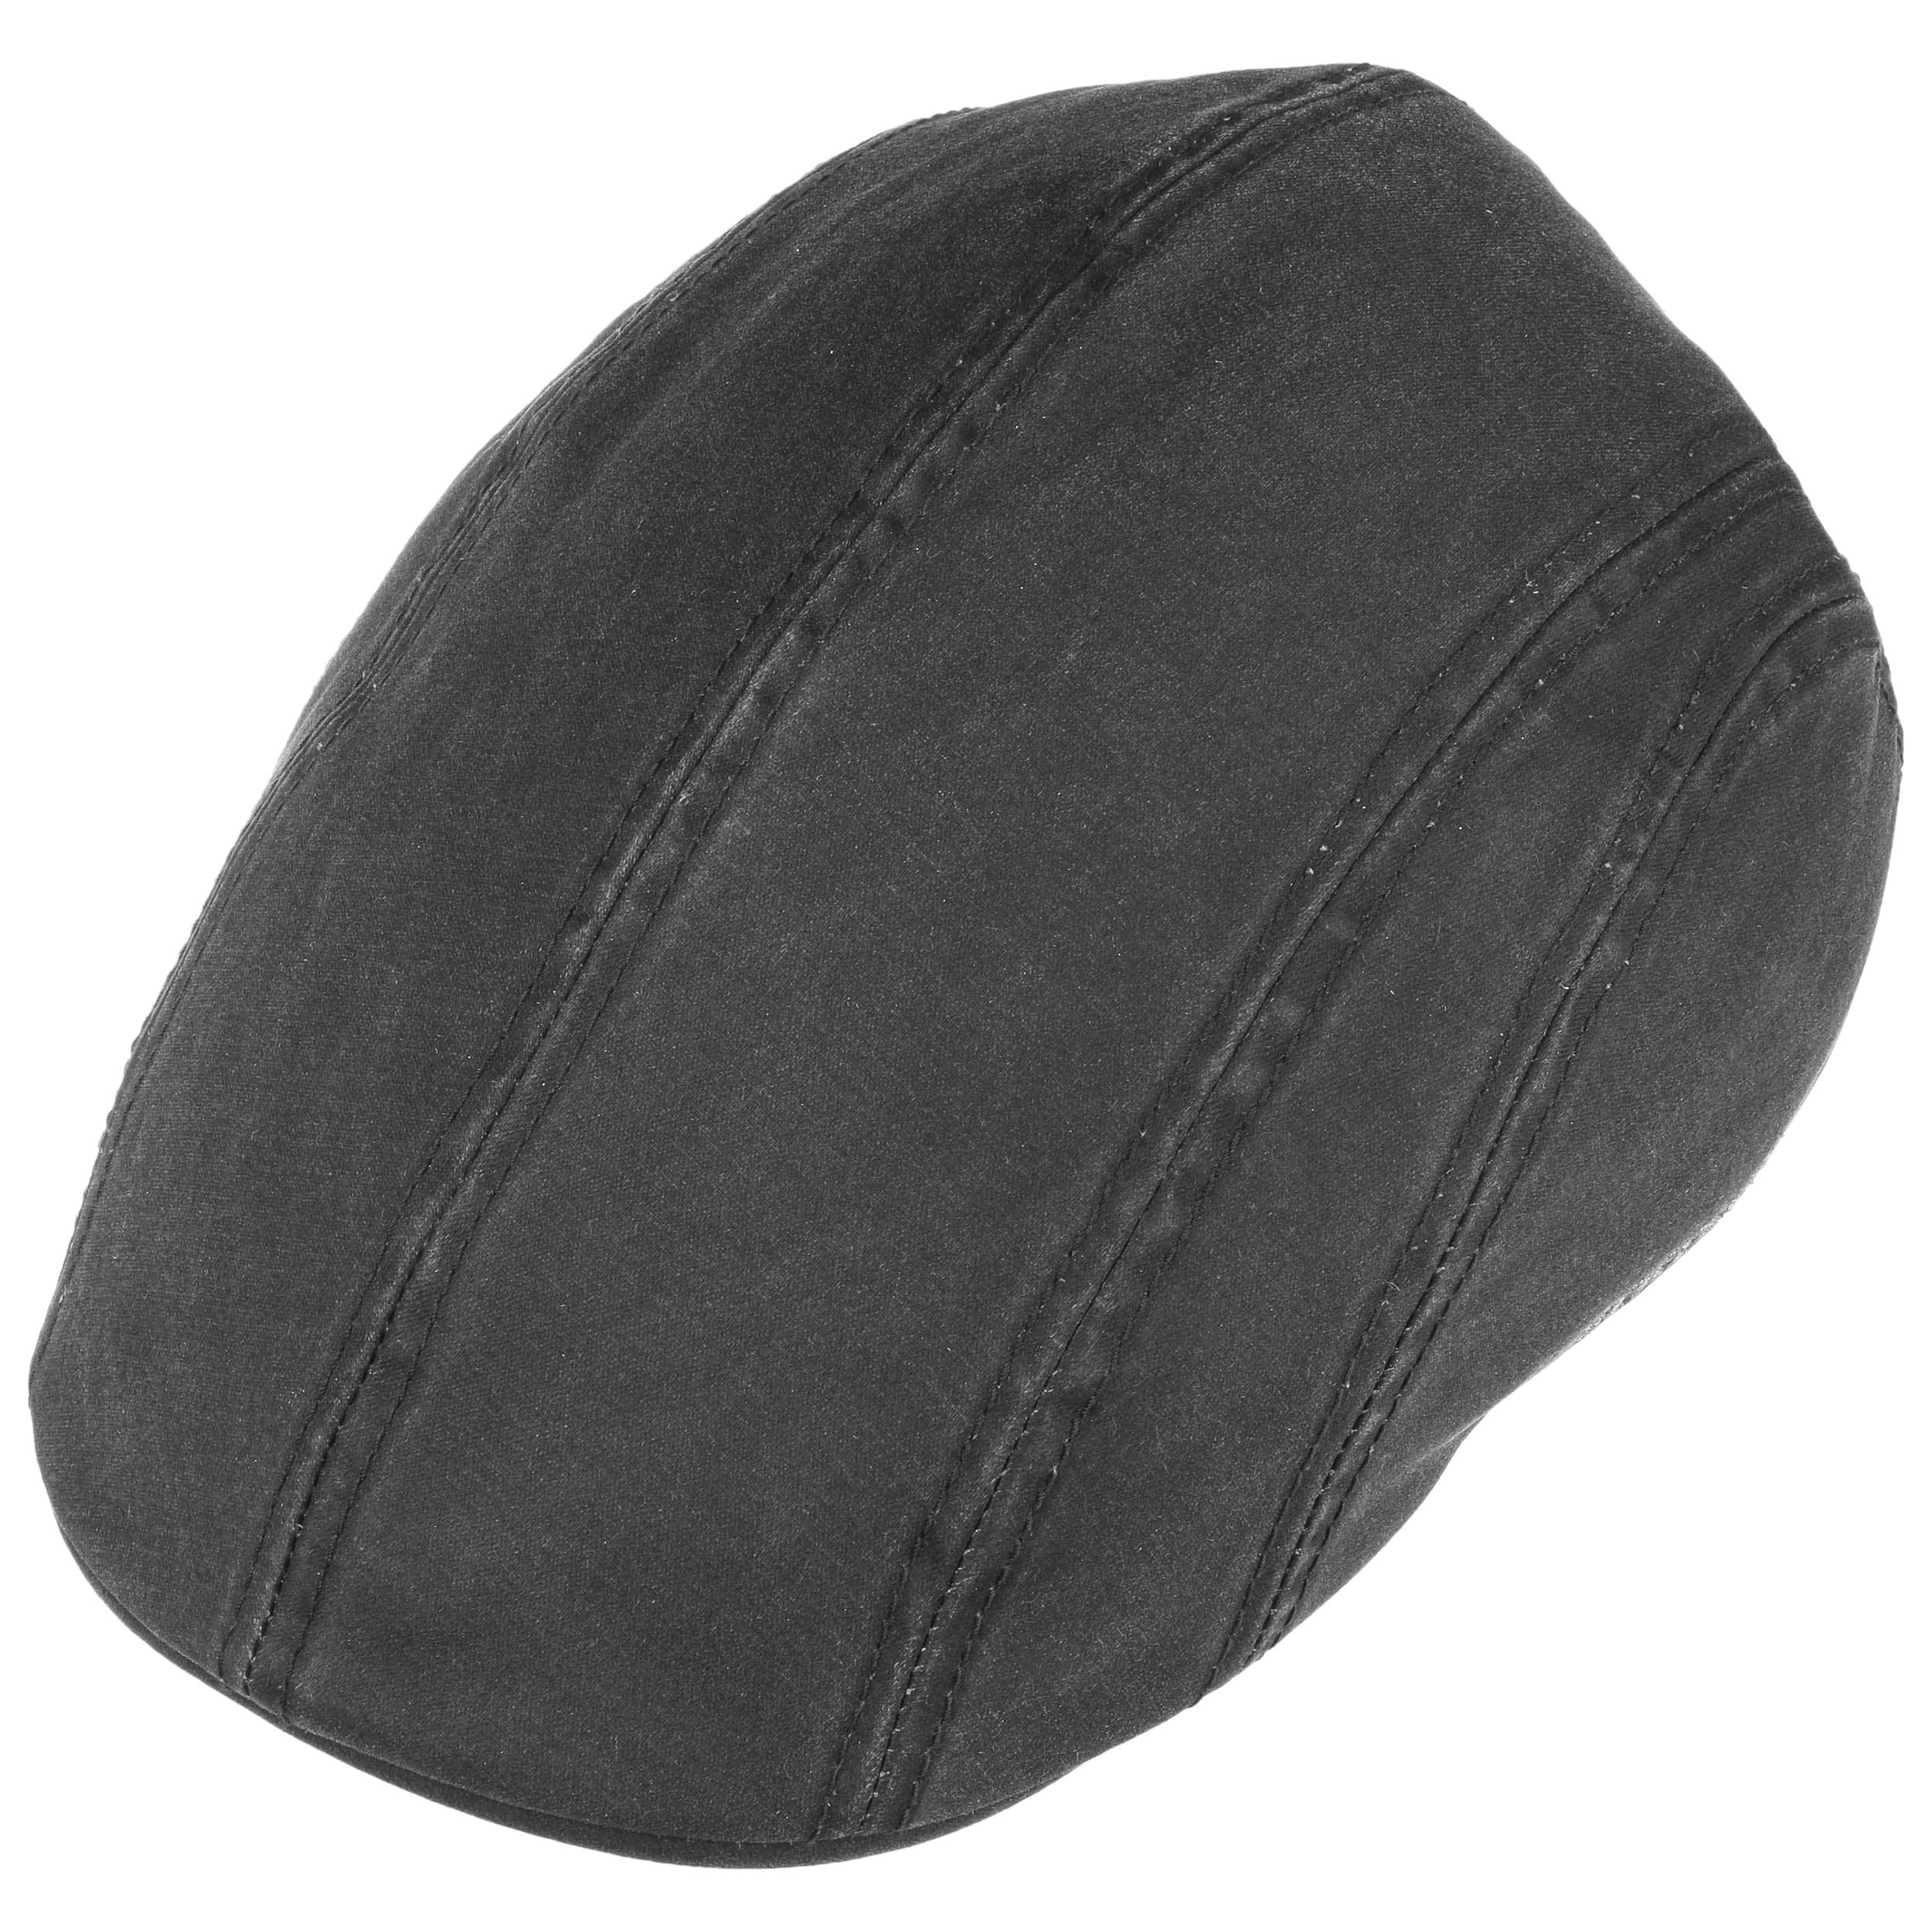 b2dedbba0cc ... Old Cotton Flat Cap with Ear Flaps by Stetson - black 1 ...